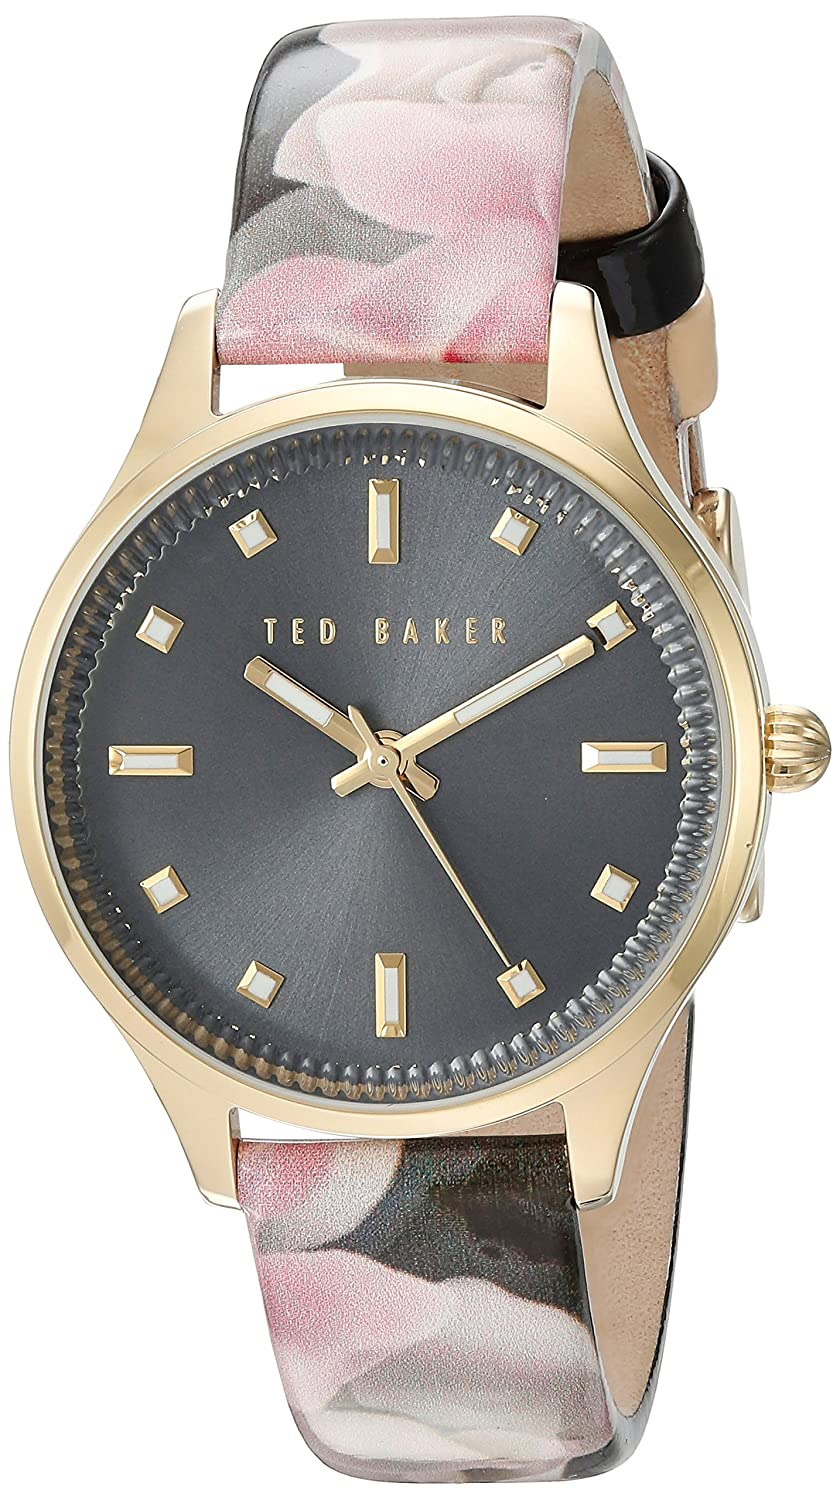 Damen Damen Gold Tone Quarz Akku Ted Baker Fashion Uhr an Lederband mit Datum. te10030742